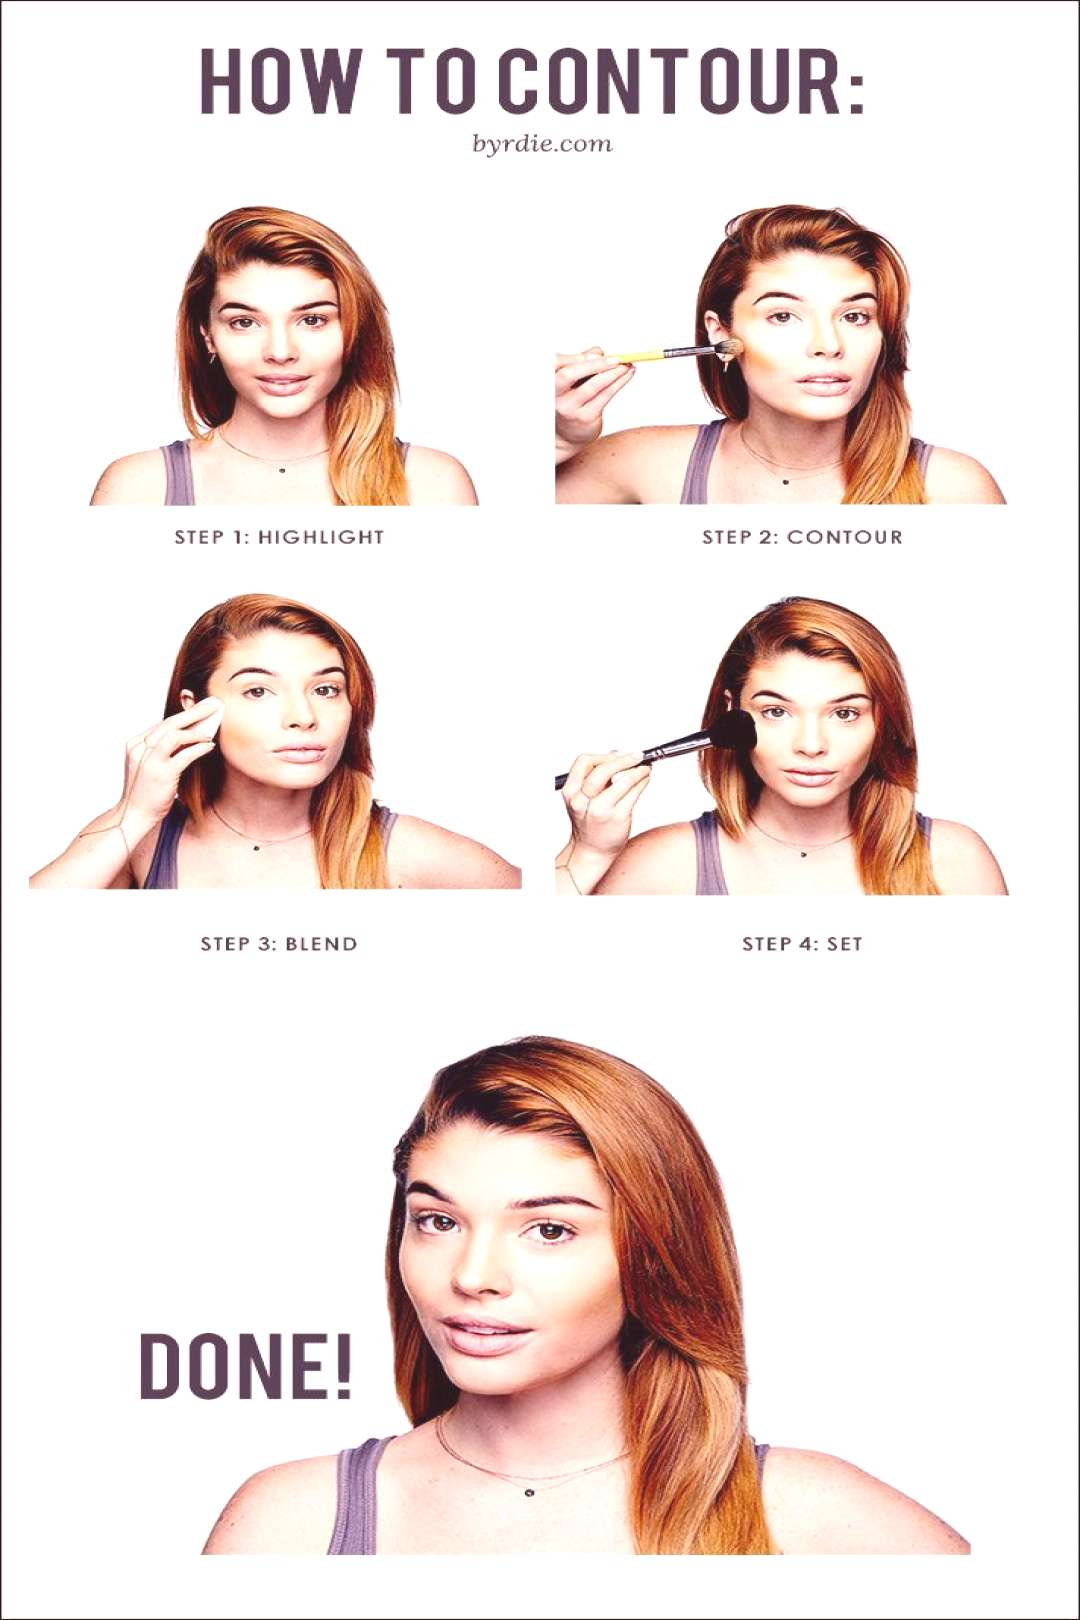 An easy how-to guide to contouring from celebrity makeup artist Lauren Andersen. // tips